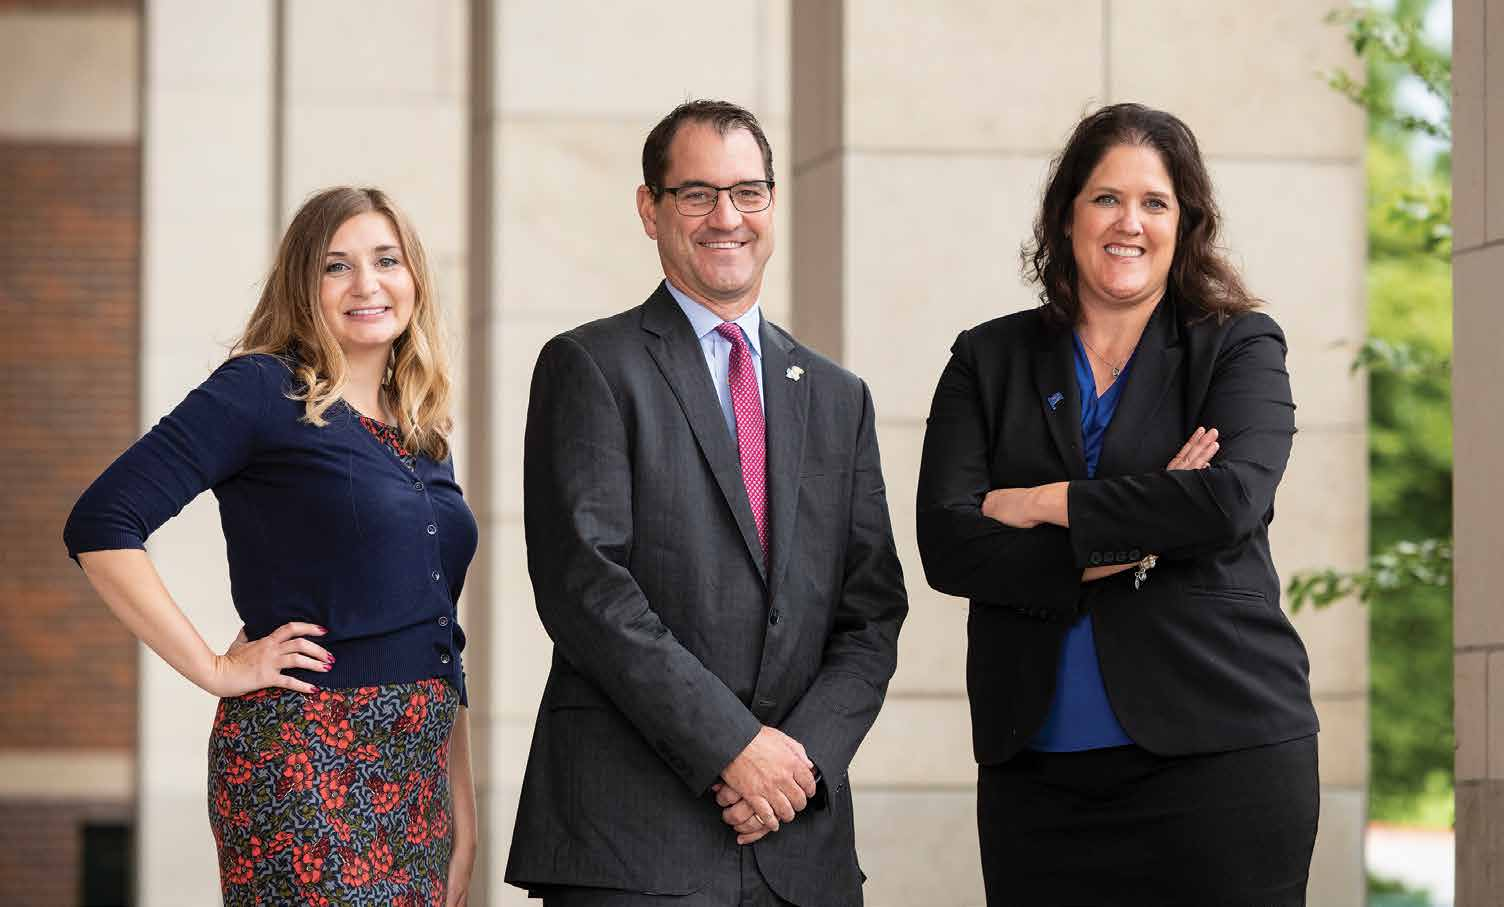 Lauren McEnaney, David Cook and Carolyn McKnight believe the program offers career-oriented students in Kansas City a cost-efficient way to attend KU. Photo by Steve Puppe.